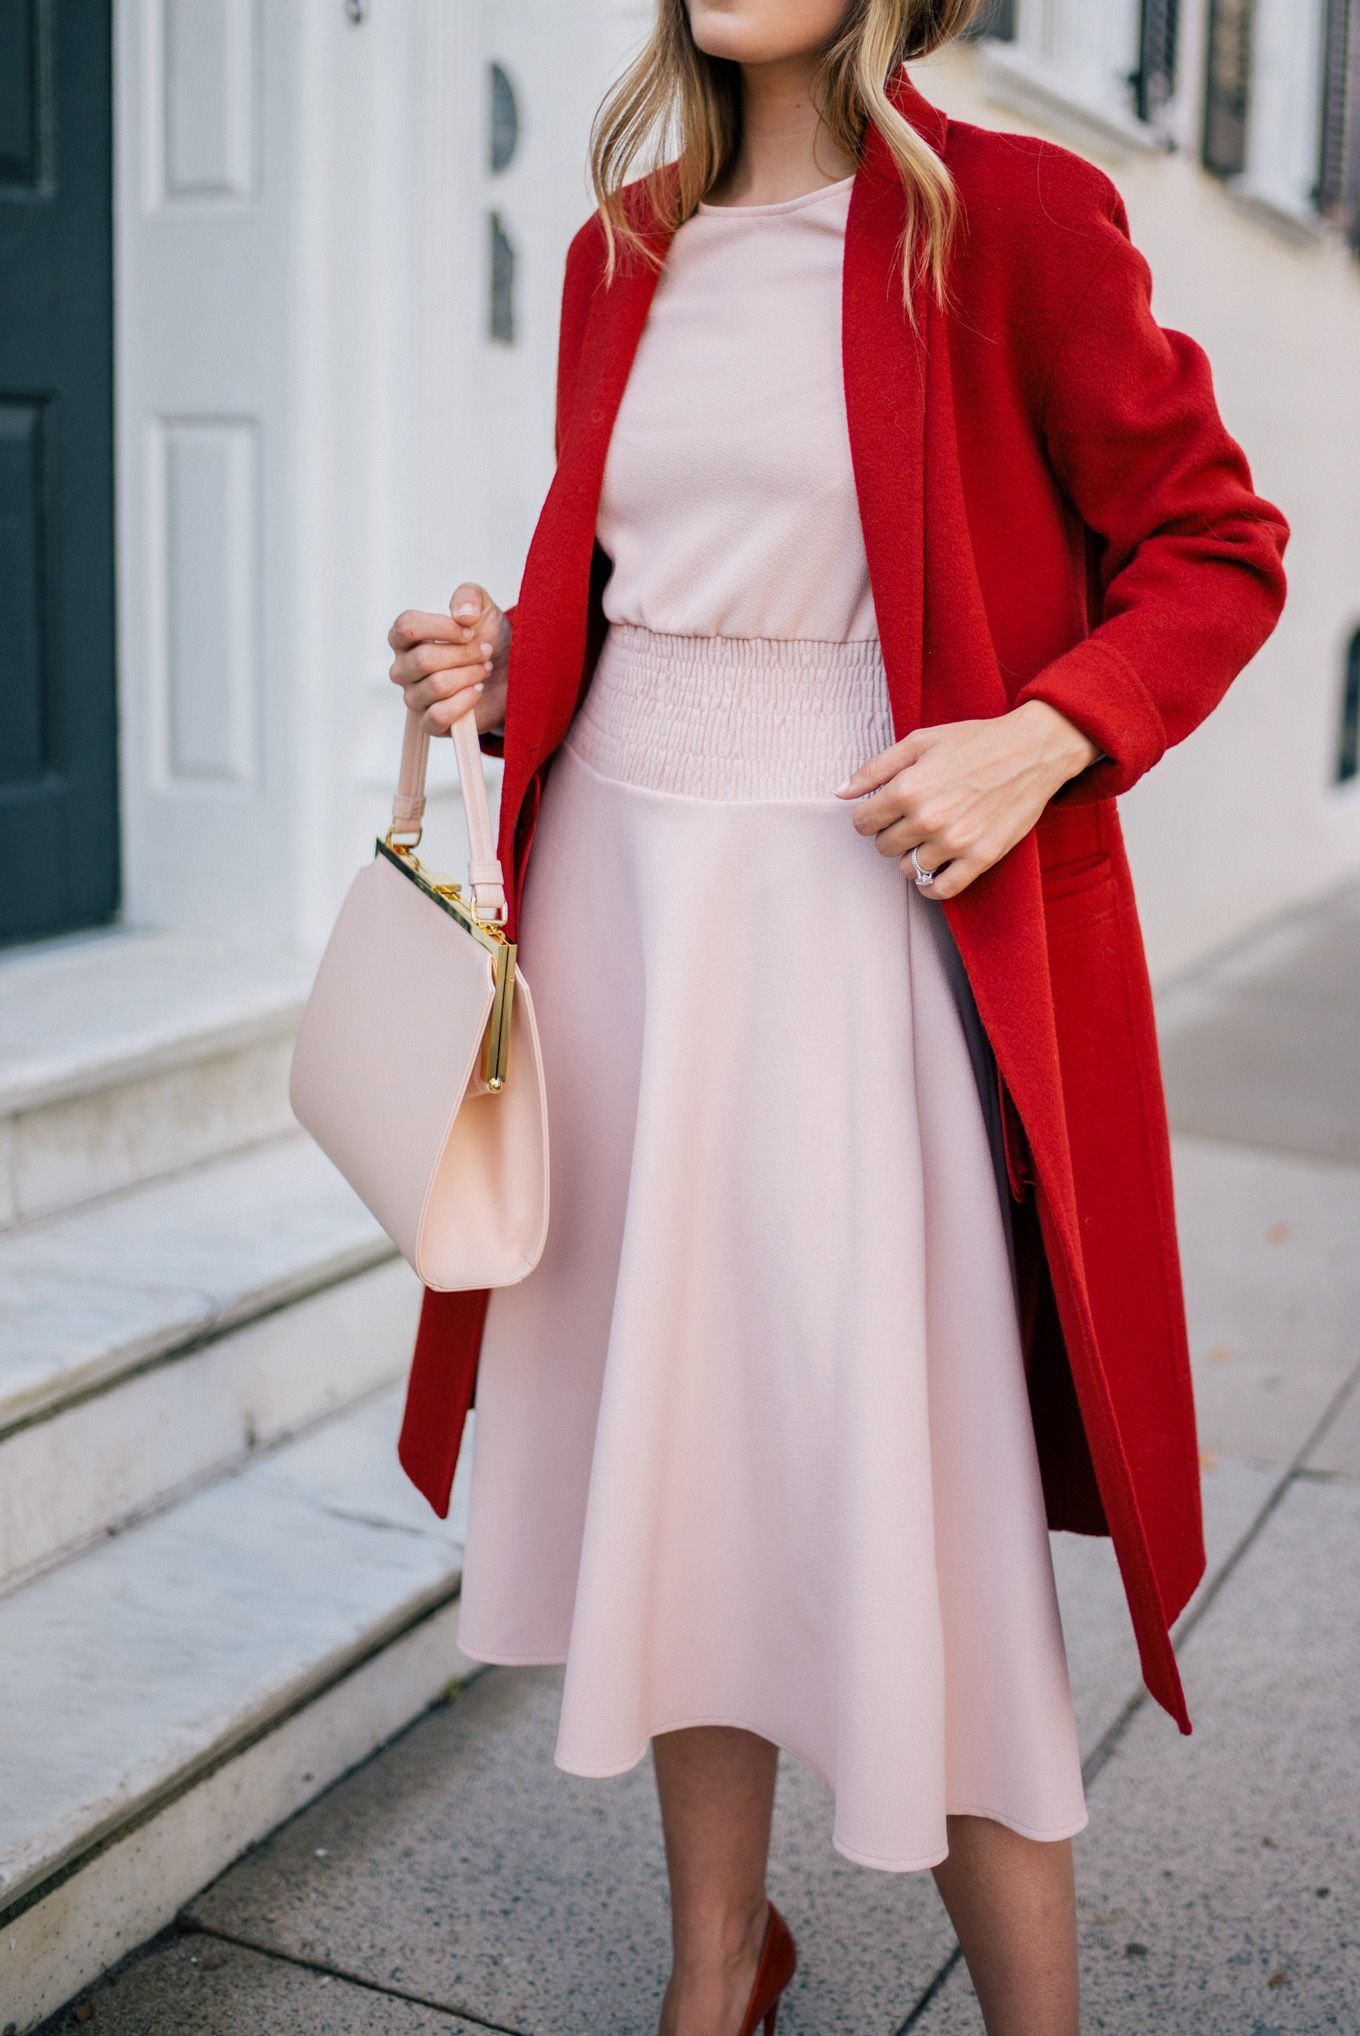 Red-and-Pink-The-Trending-color-fusion-followed-by-the-Fashion-Stalker